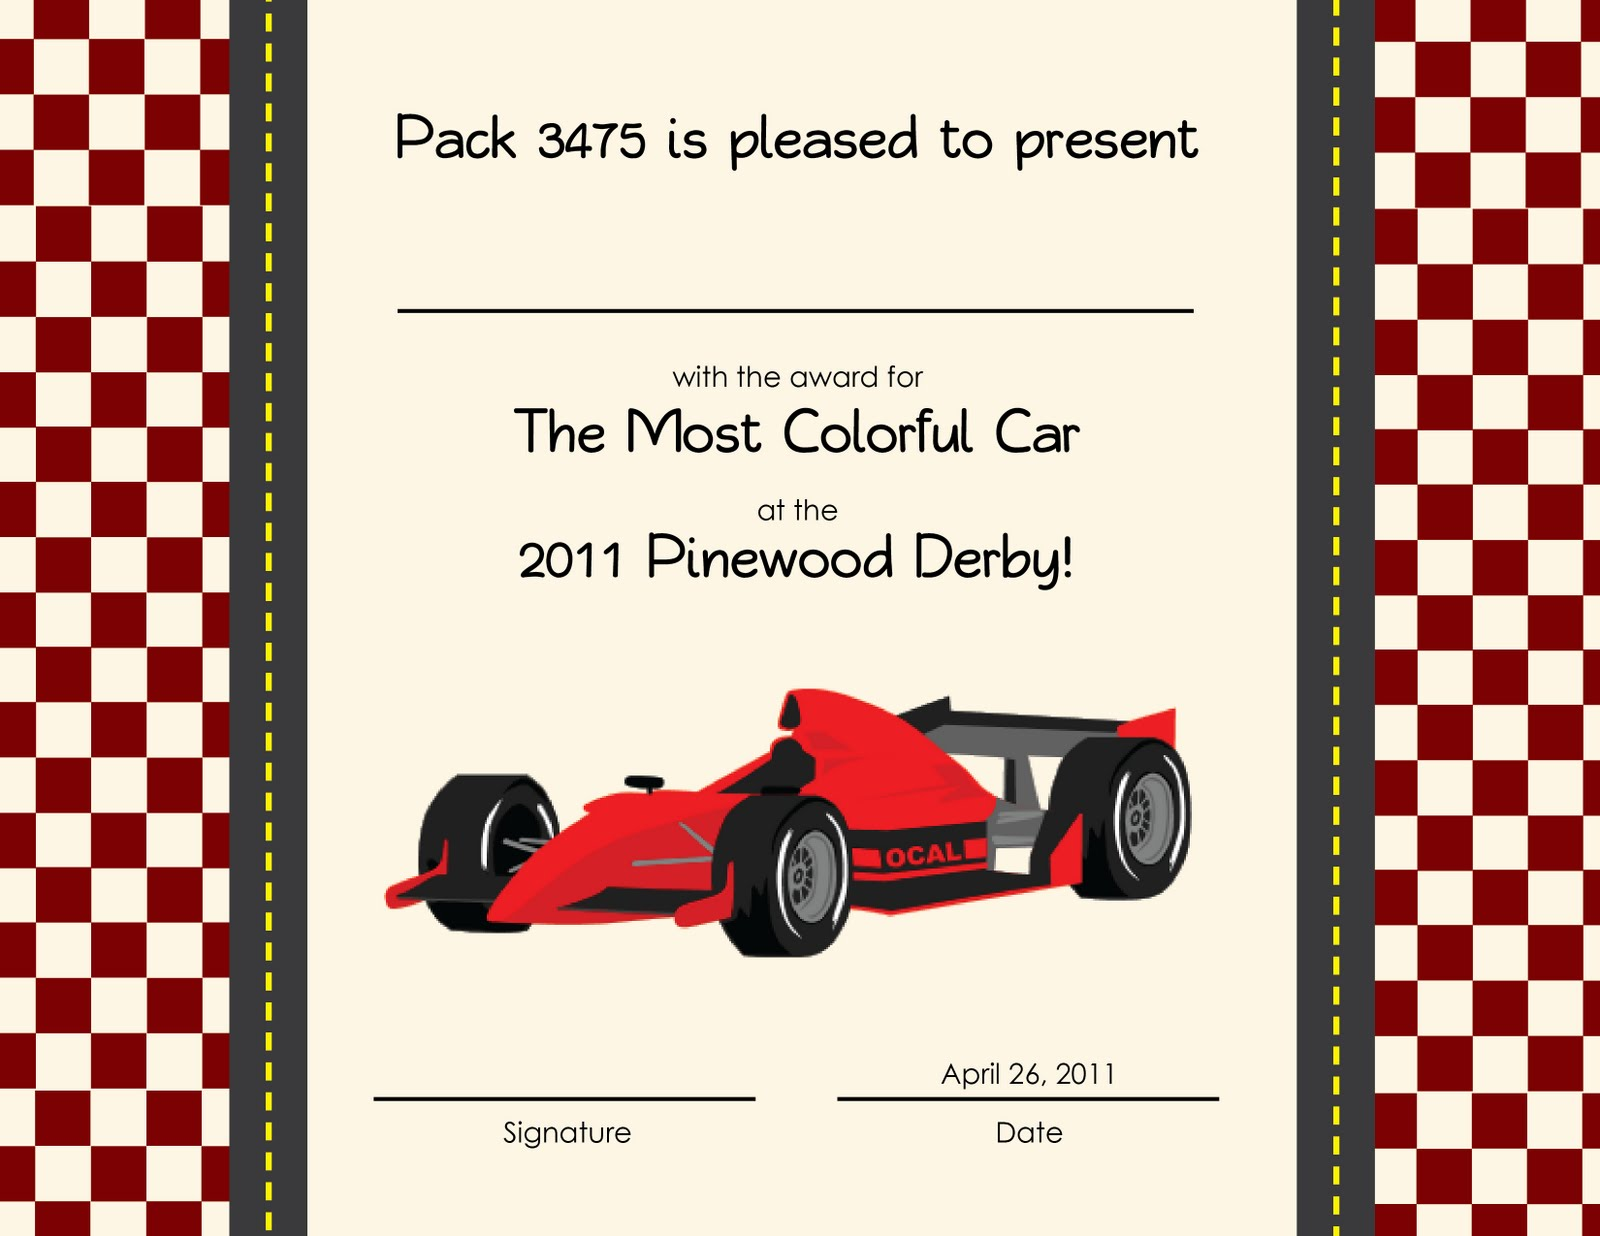 Pinewood derby certificate templates just bcause for Pinewood derby certificate pdf